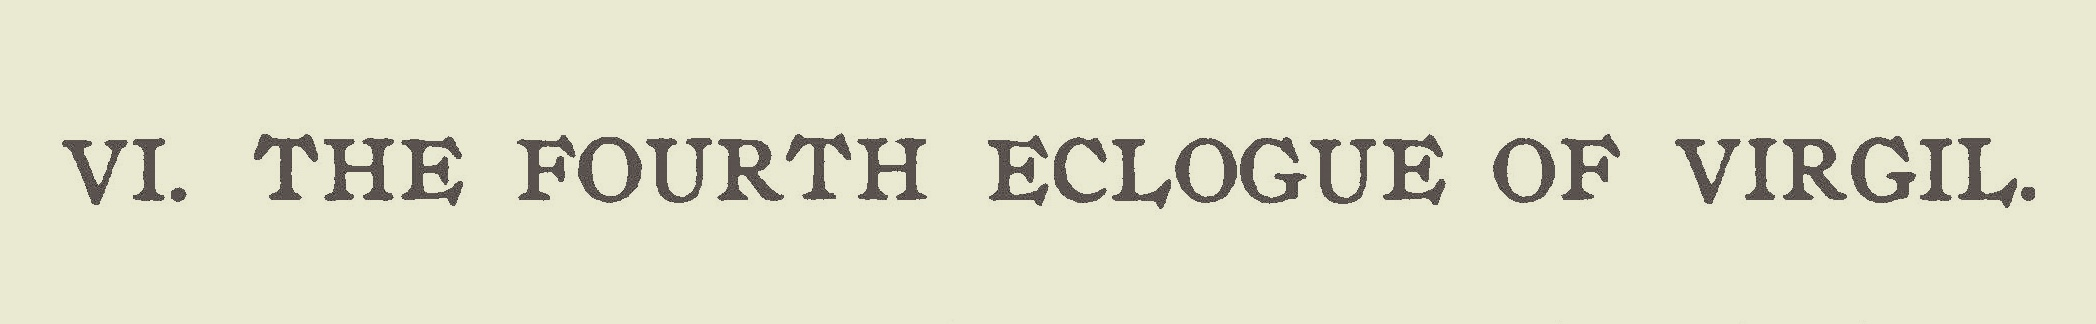 Wright, Julia McNair, The Fourth Eclogue of Virgil Title Page.jpg